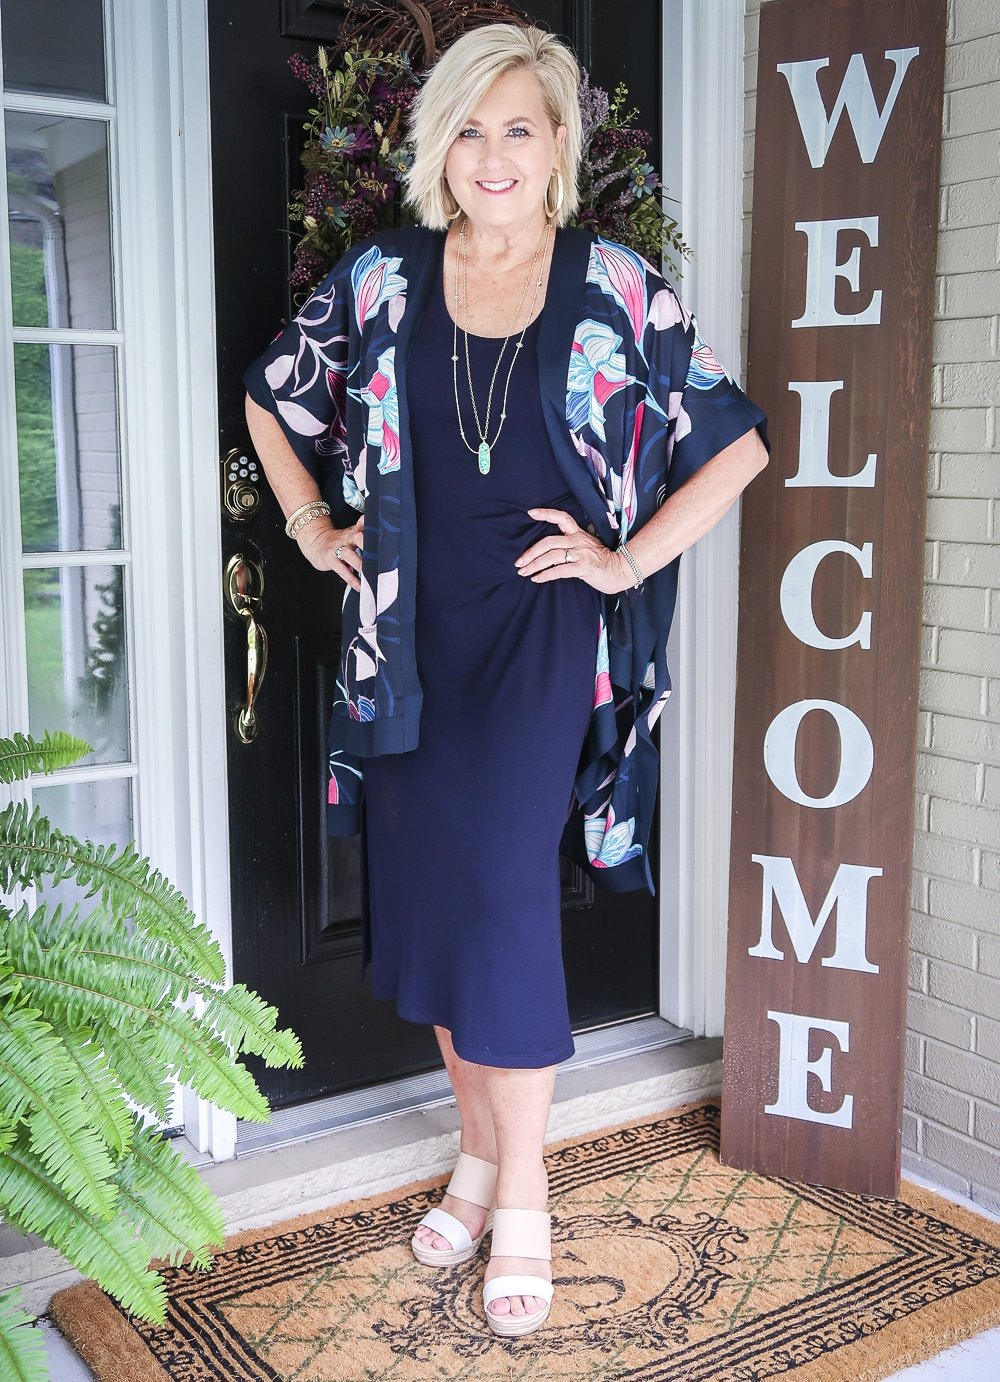 Fashion Blogger 50 Is Not Old is wearing a navy midi dress in all of the seasons. In summer, she added a floral kimono, and two-tone espadrille wedge shoes